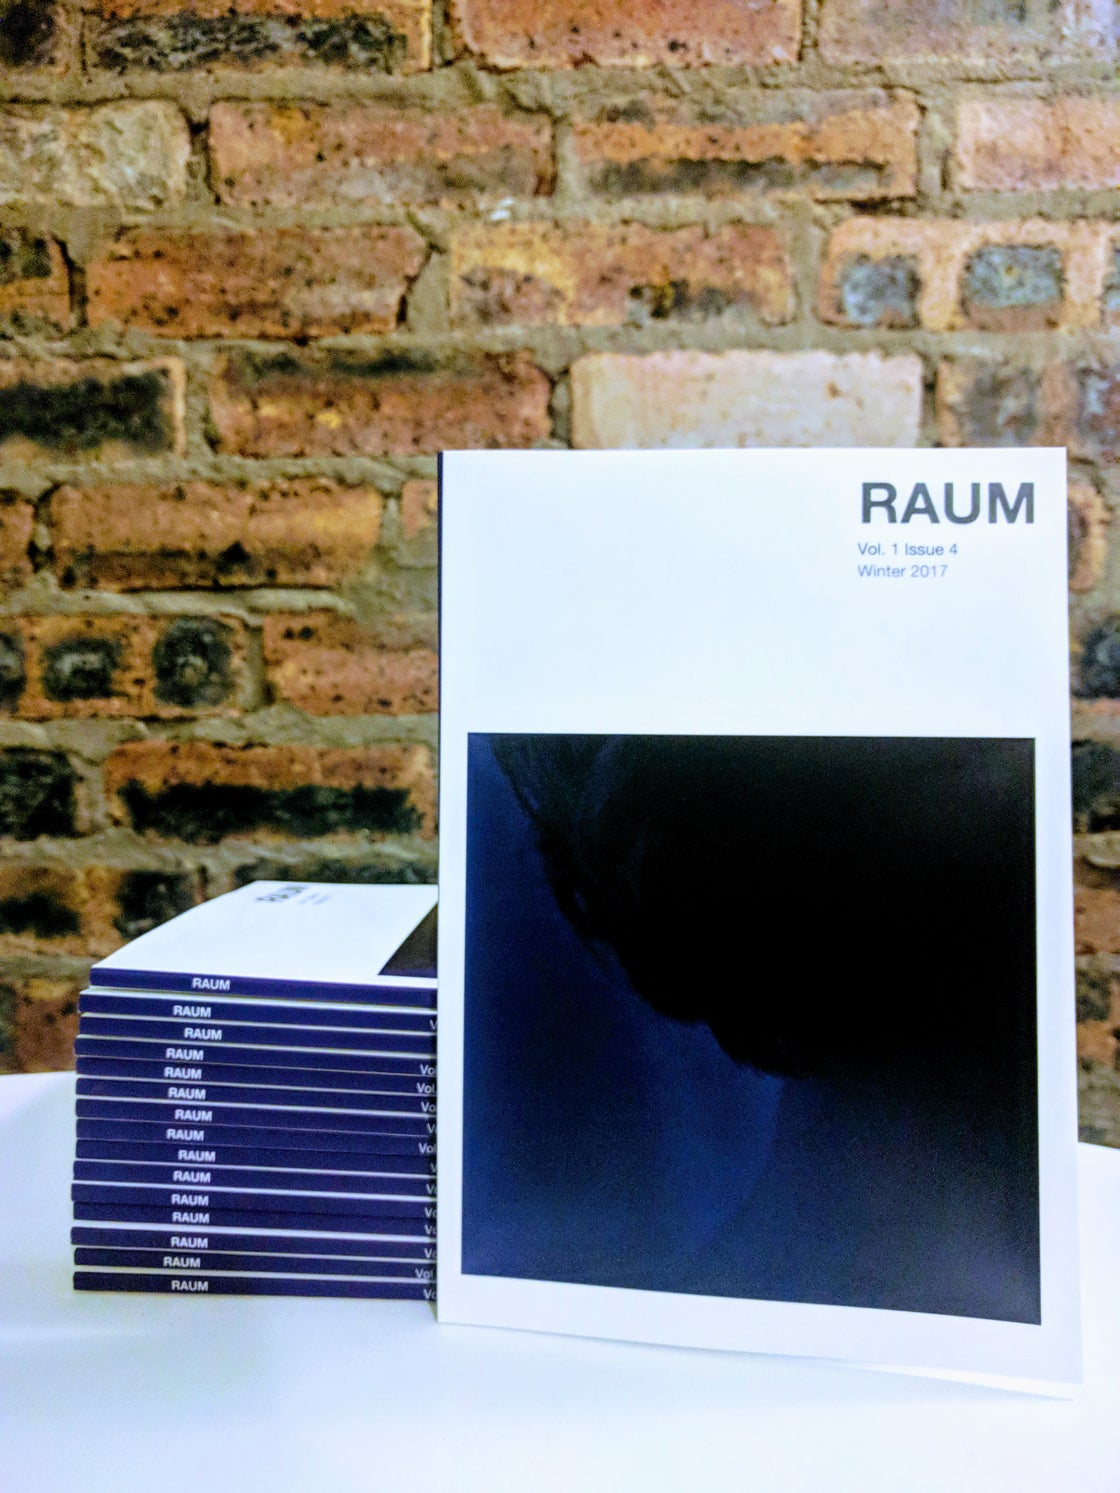 Image of RAUM / Vol 1 Issue 4 / Winter 2017